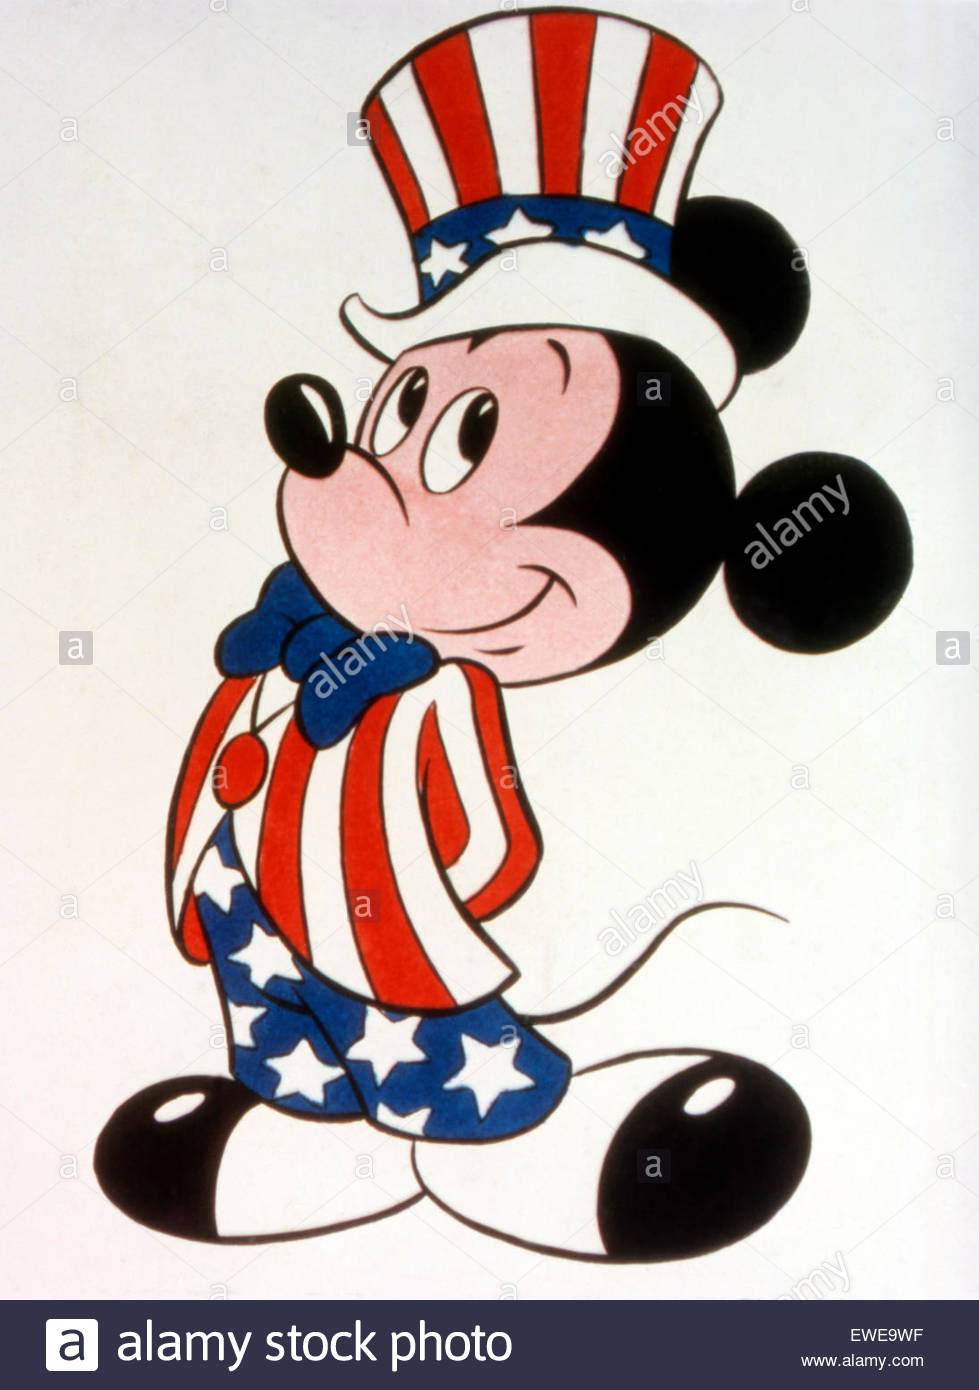 Fourth of July Mickey Mouse Stock Photo: 84522971.